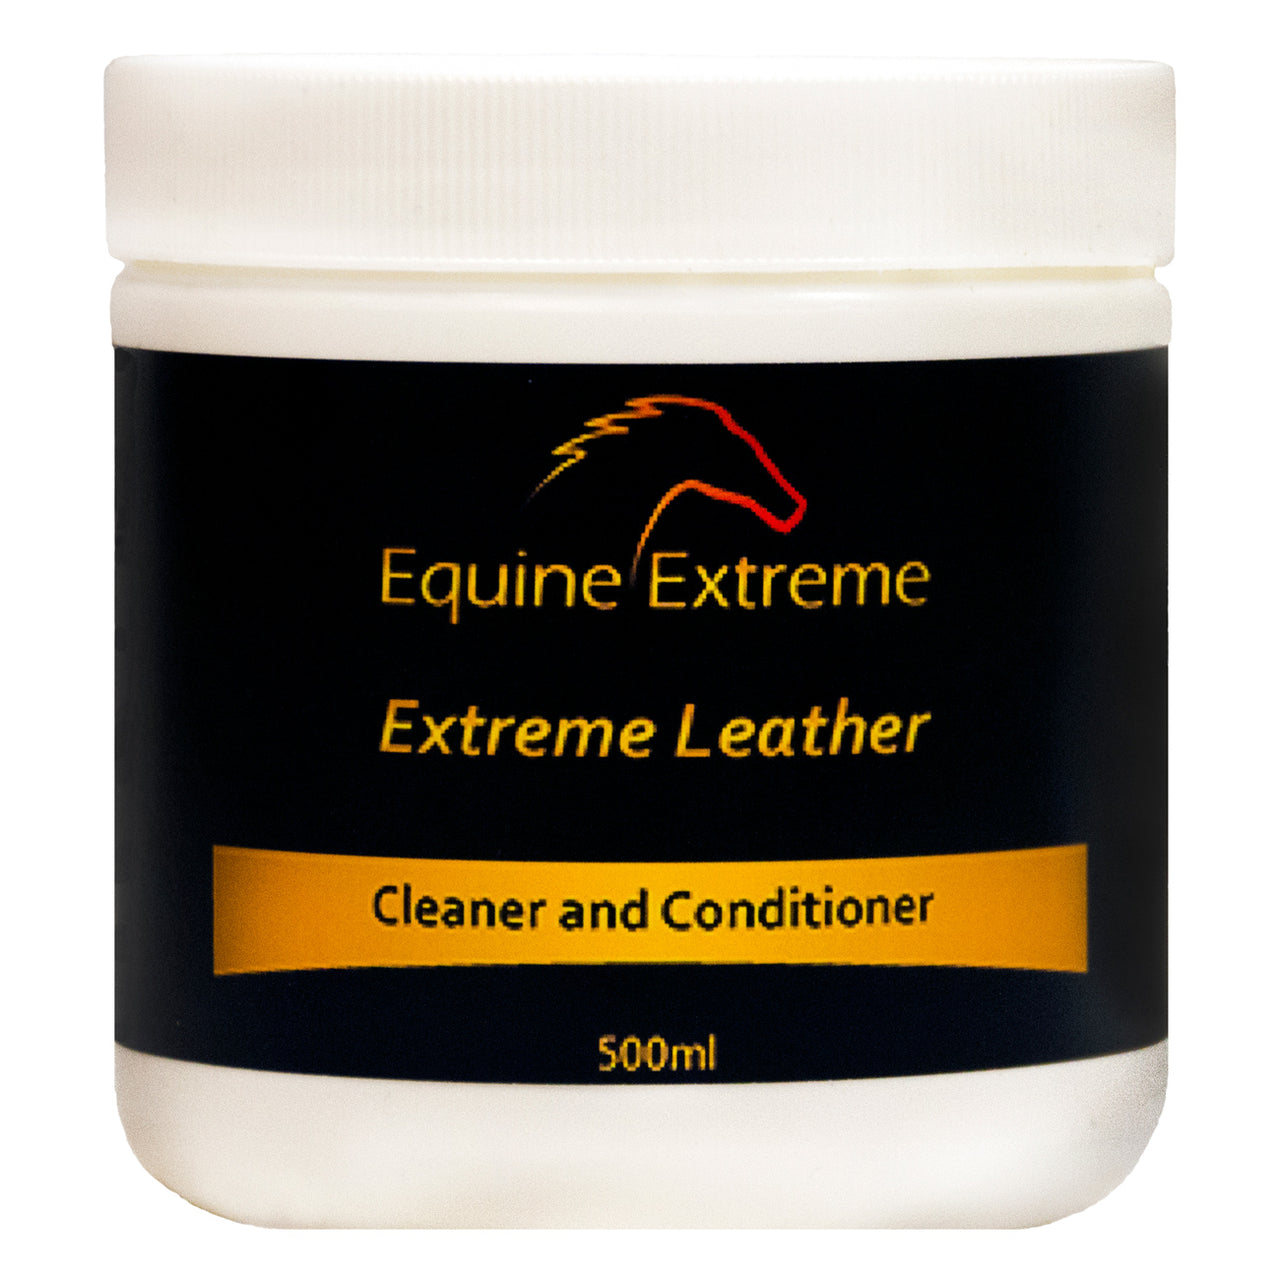 Equine Extreme Leather Cleaner 500Ml - Leather Care Equine Extreme - Canada